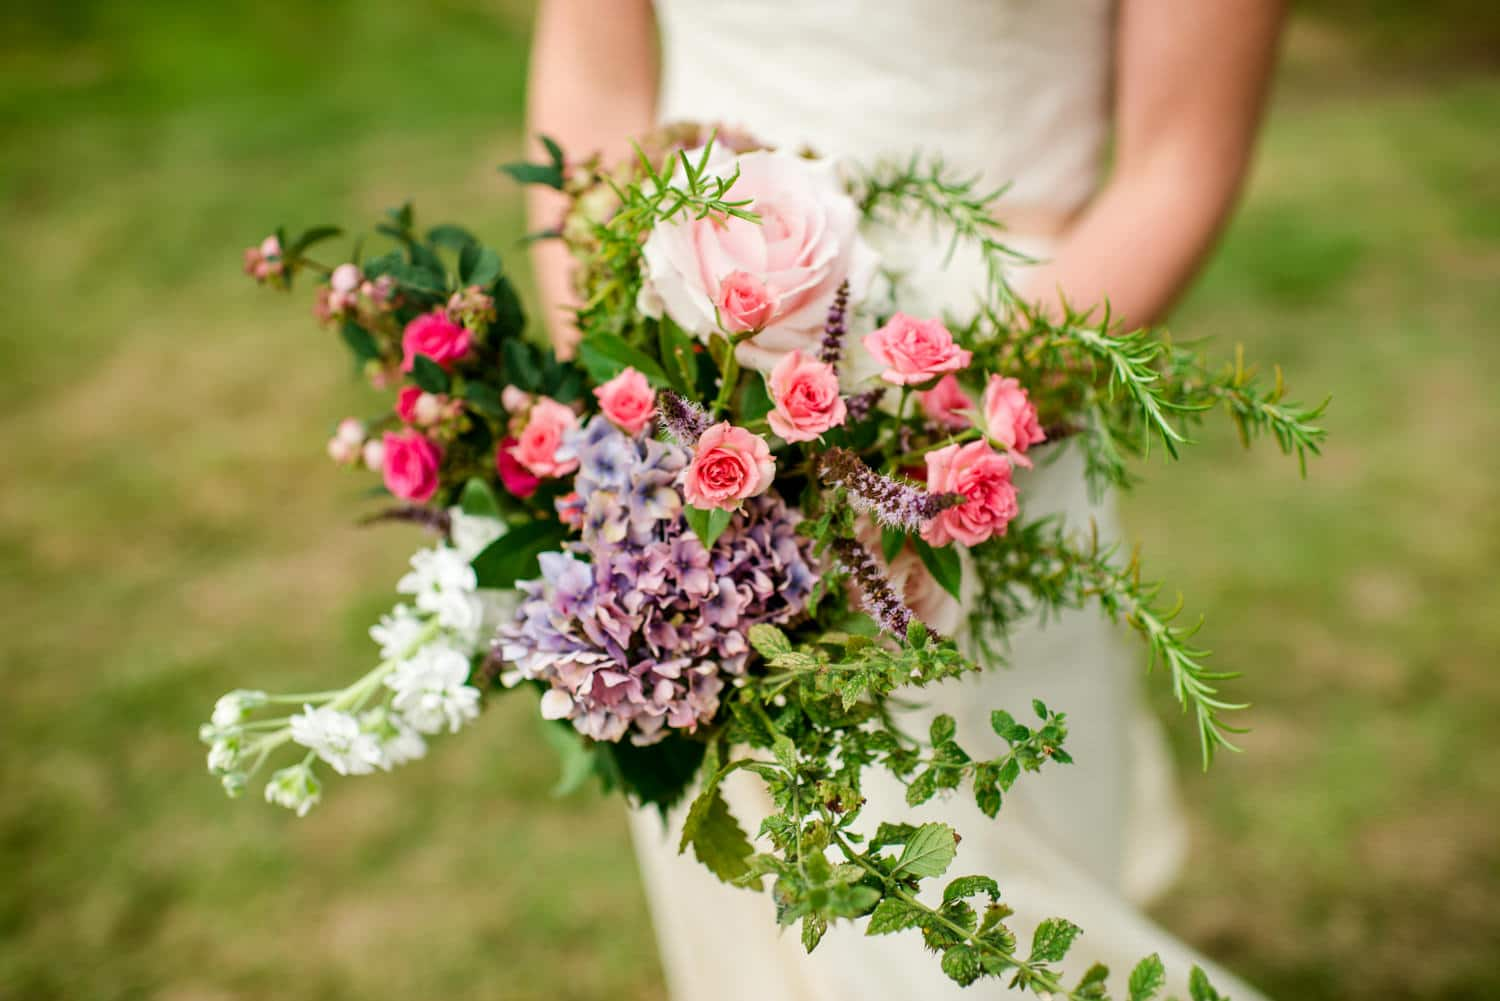 wedding bouquet by Tattie Rose flowers